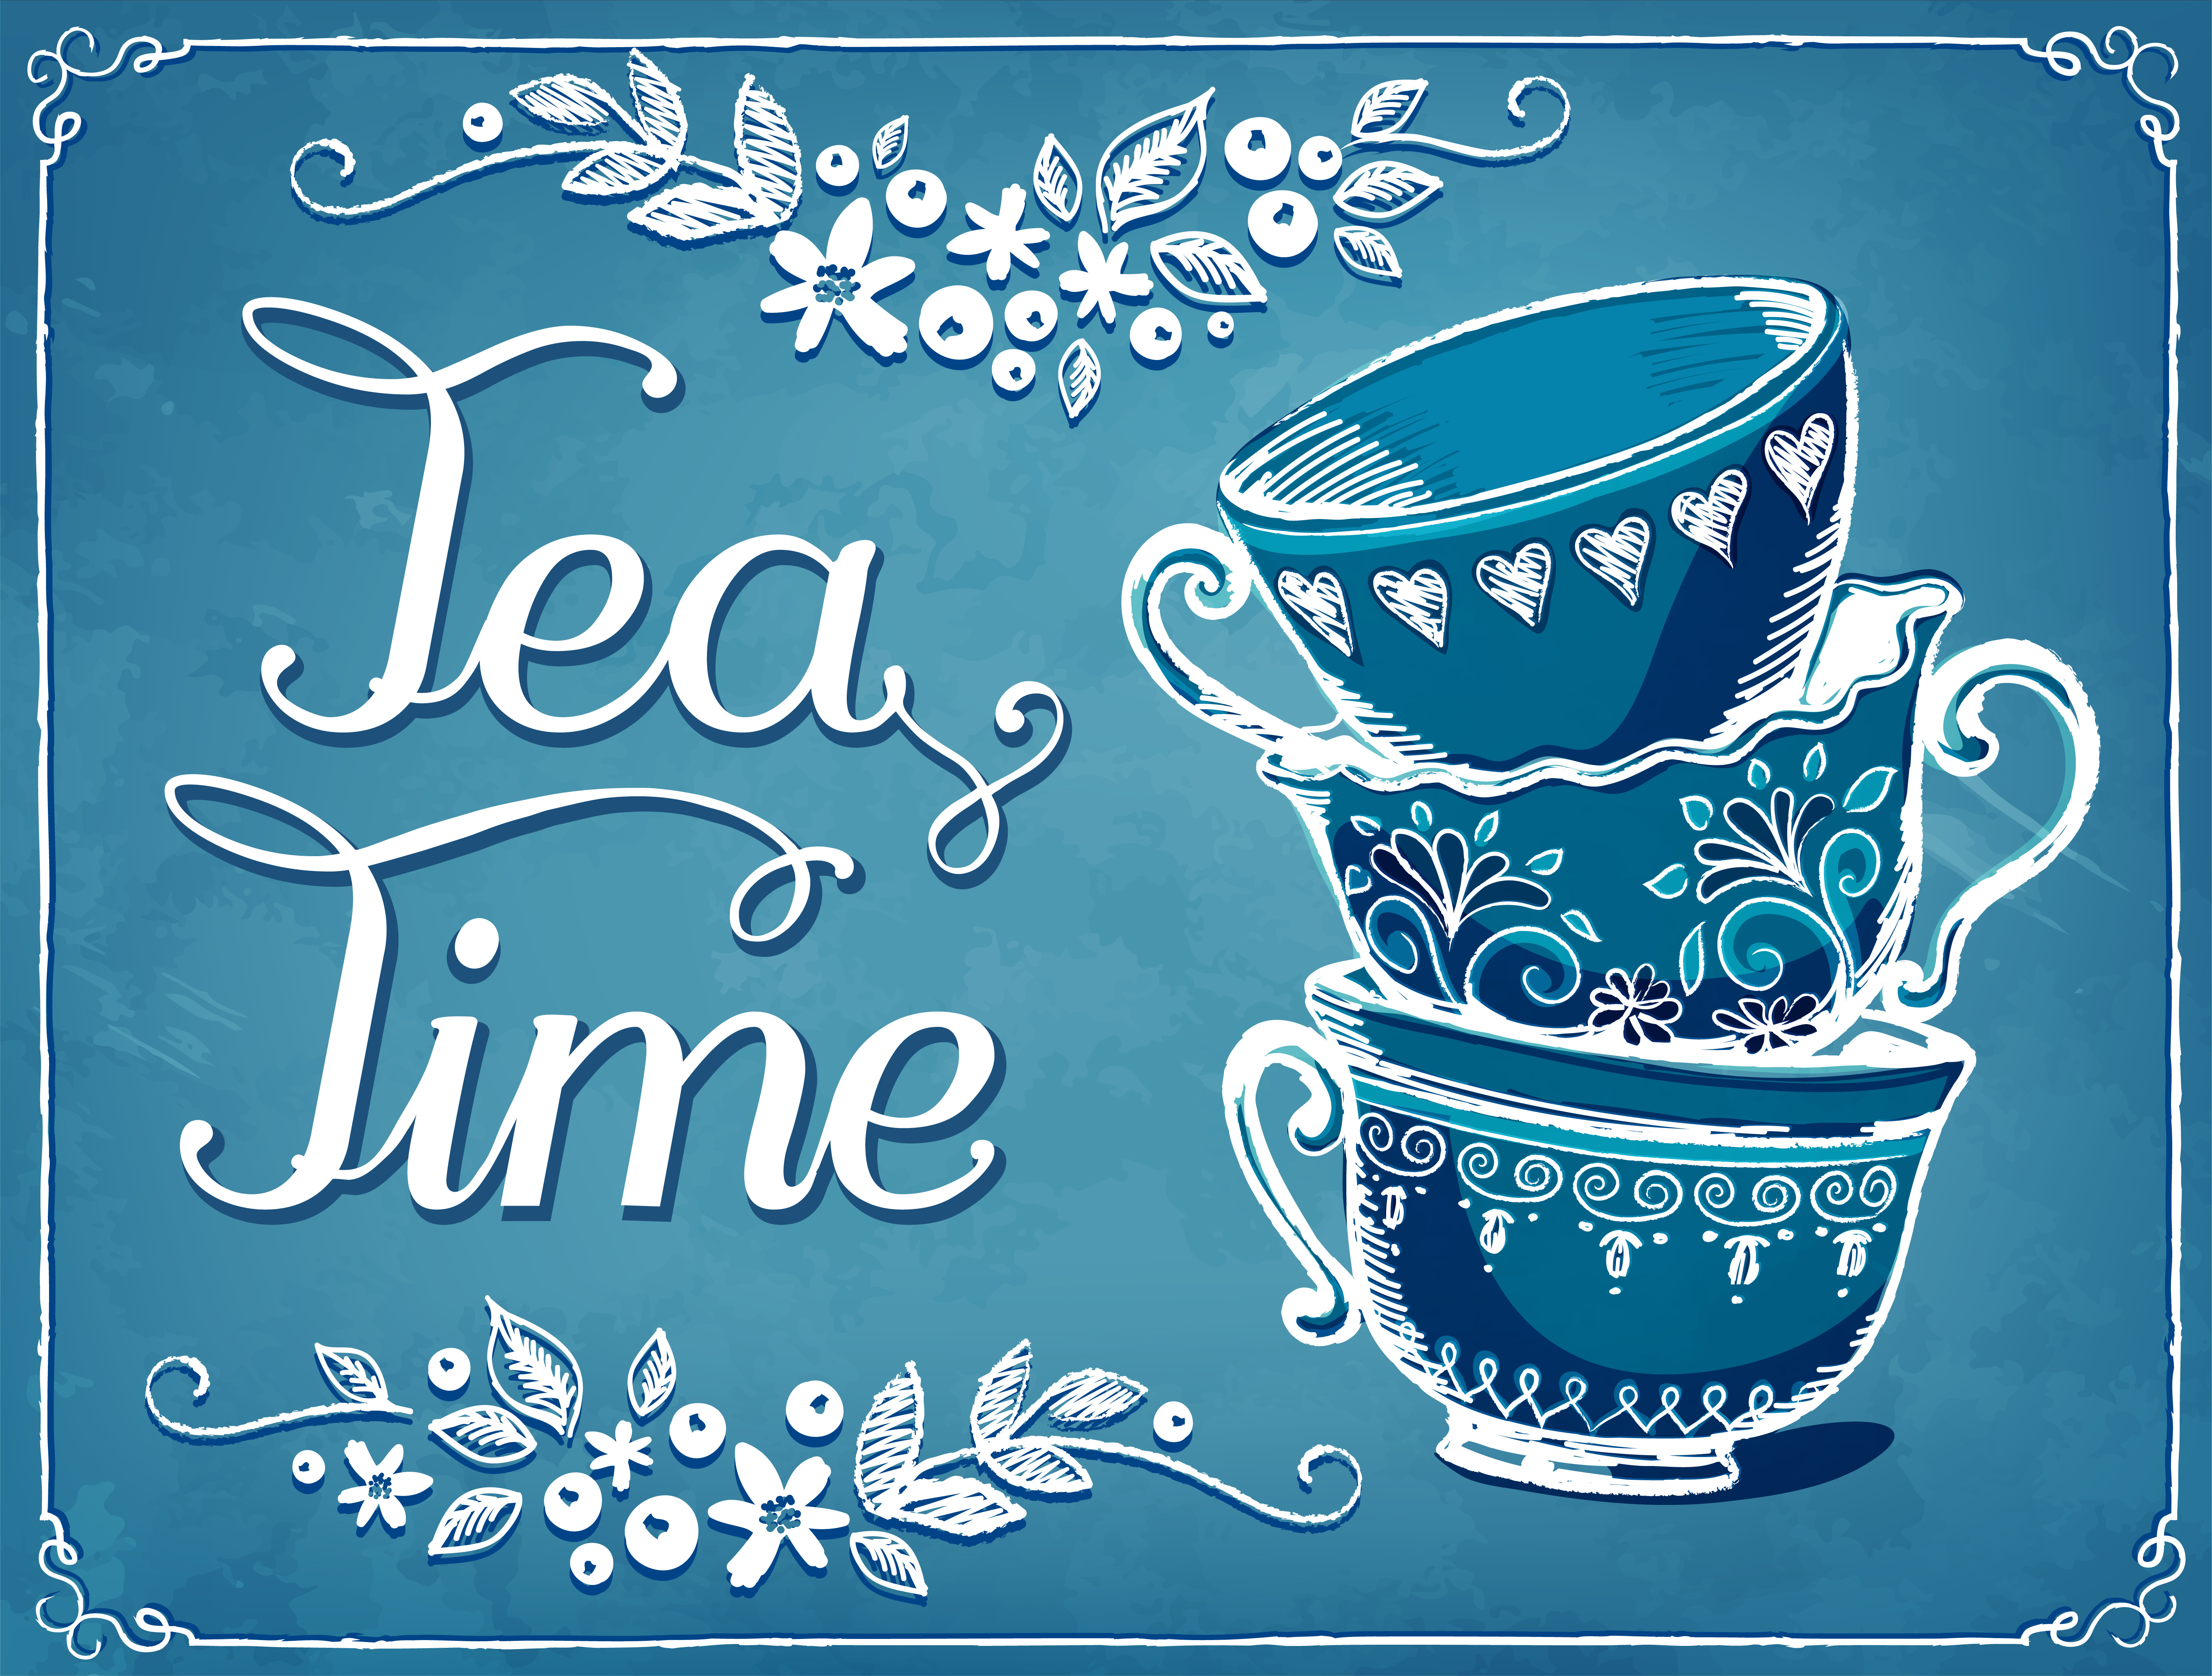 Illustration Tea Time with cute cups. Floral backgraund. Freehand drawing with imitation of chalk sketch